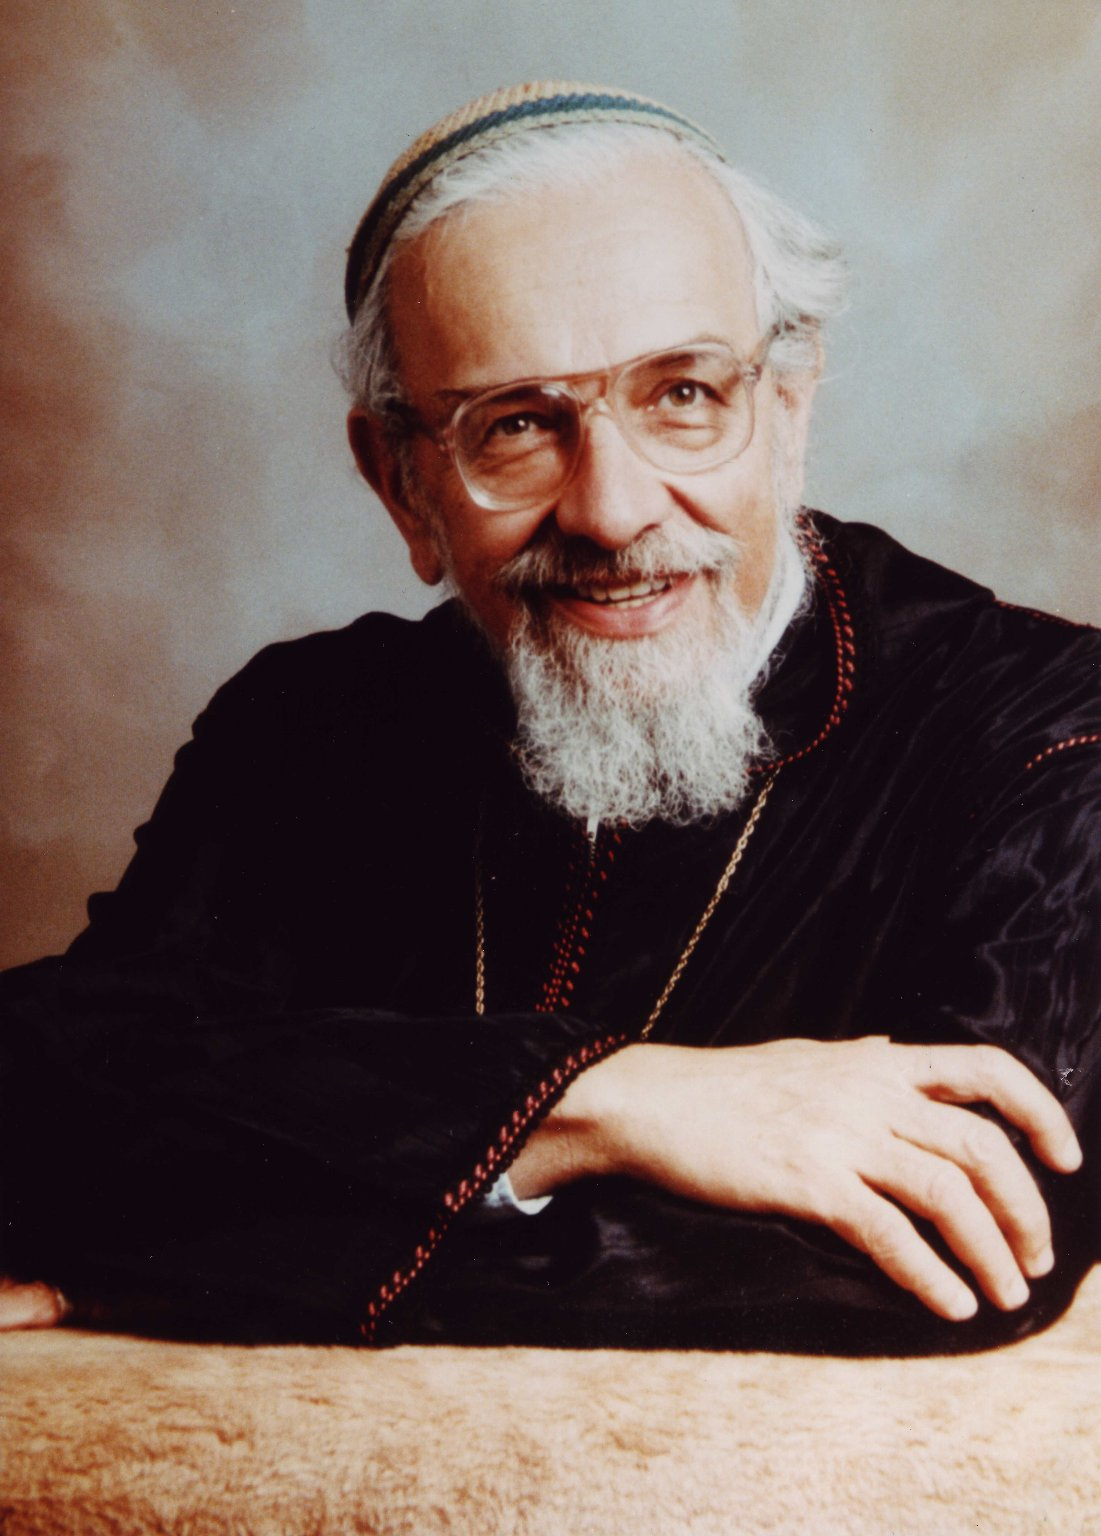 Studio portrait of Rabbi Zalman Schachter-Shalomi in a black velvet robe with orange and gold embroidery, ca. 1985.